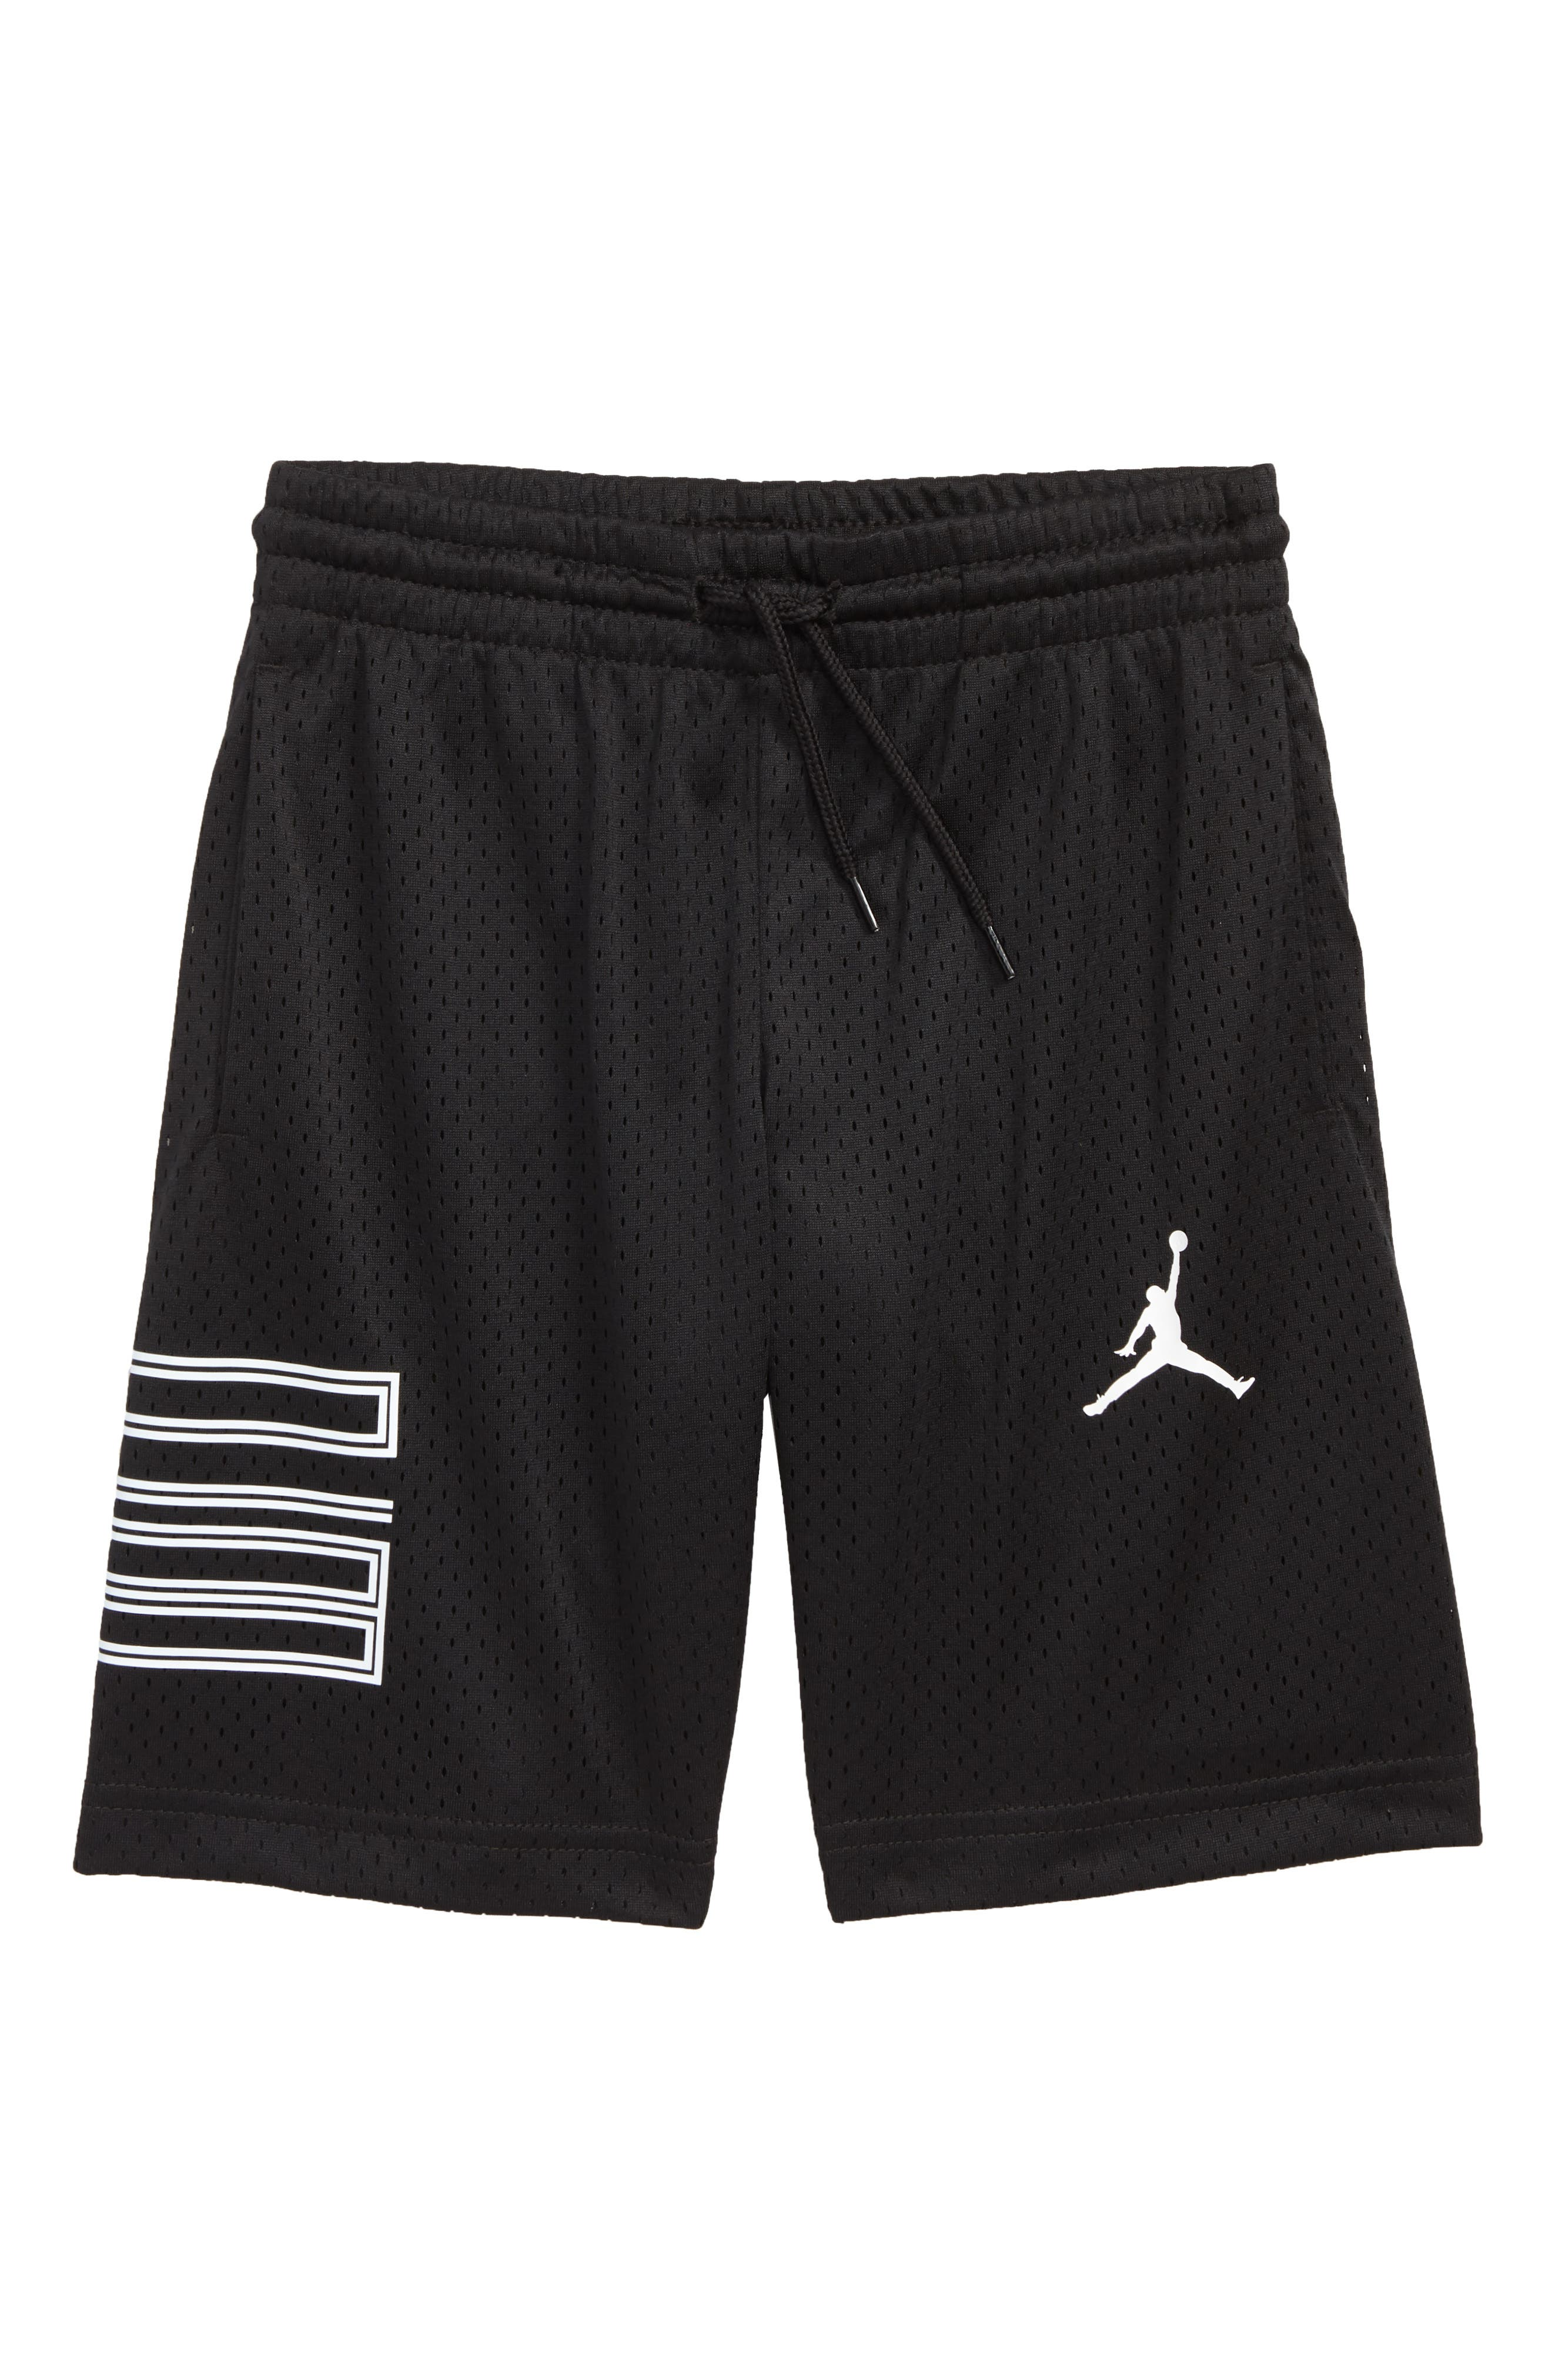 AJ11 Flight Mesh Shorts,                             Main thumbnail 1, color,                             Black